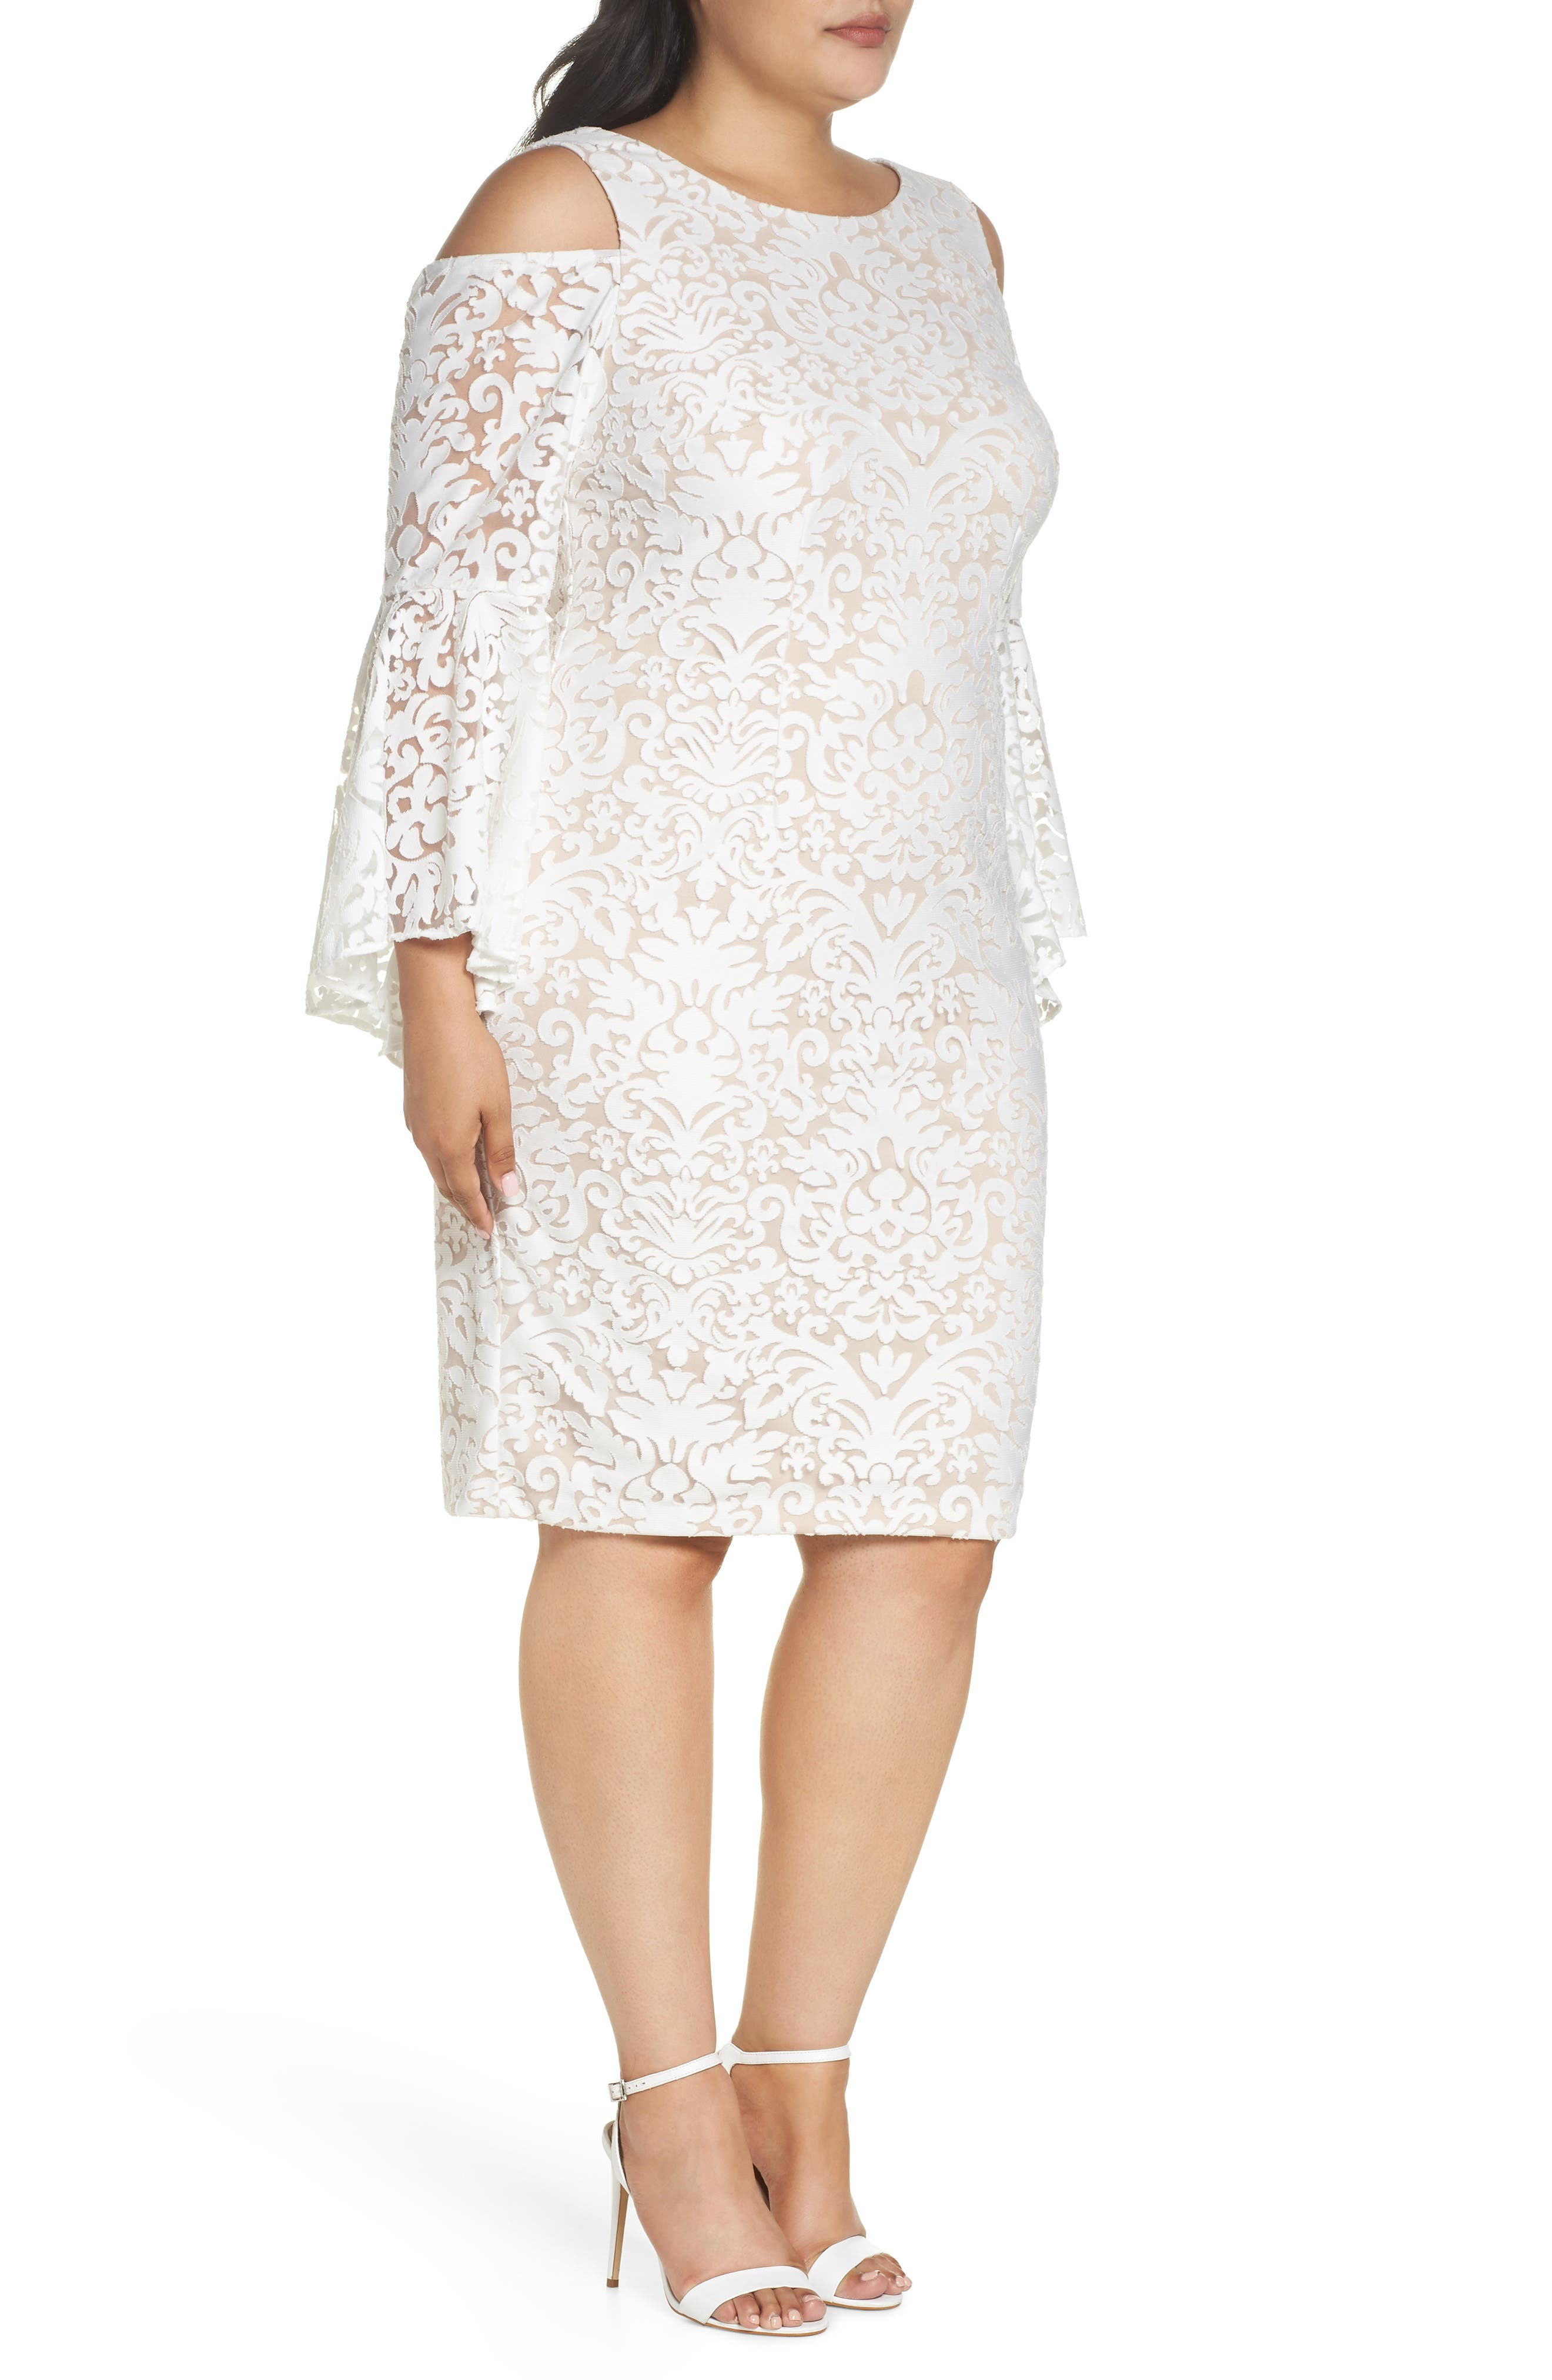 Lace Bell Sleeve Sheath Dress,                             Alternate thumbnail 3, color,                             Ivory/ Blush